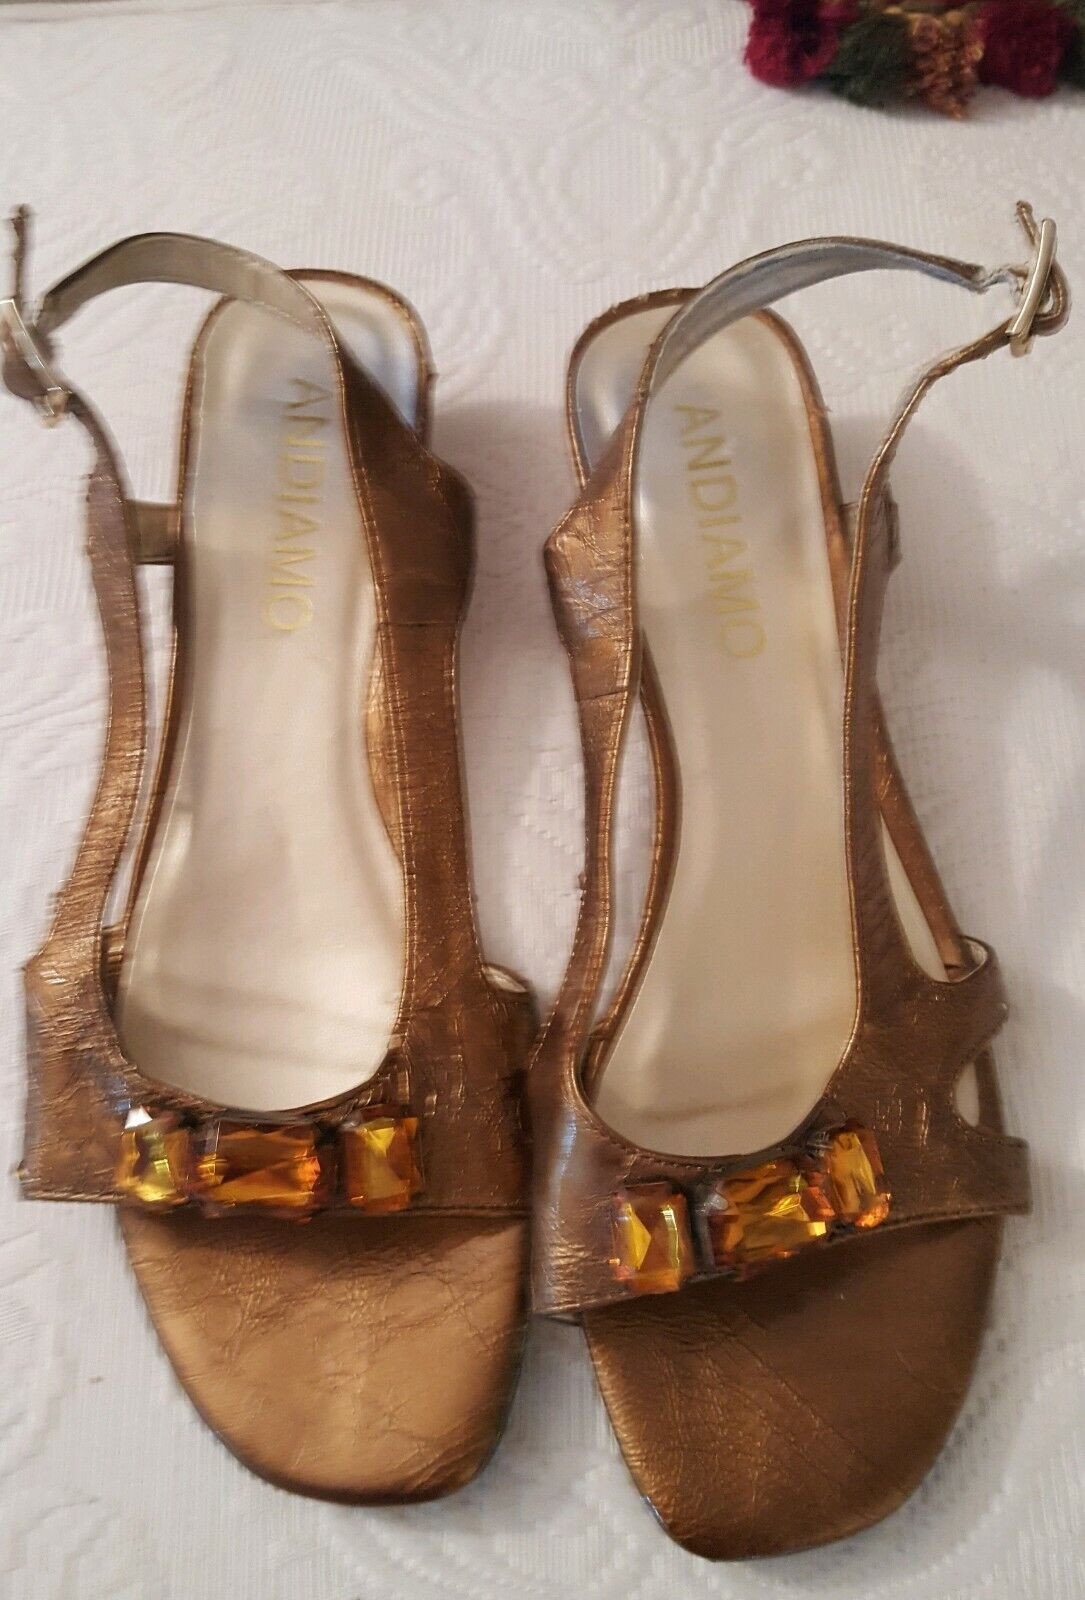 Chaussures Andiamo Sling-back fantaisie bronze Sandales Avec Jeweled Bordure Taille 7.5